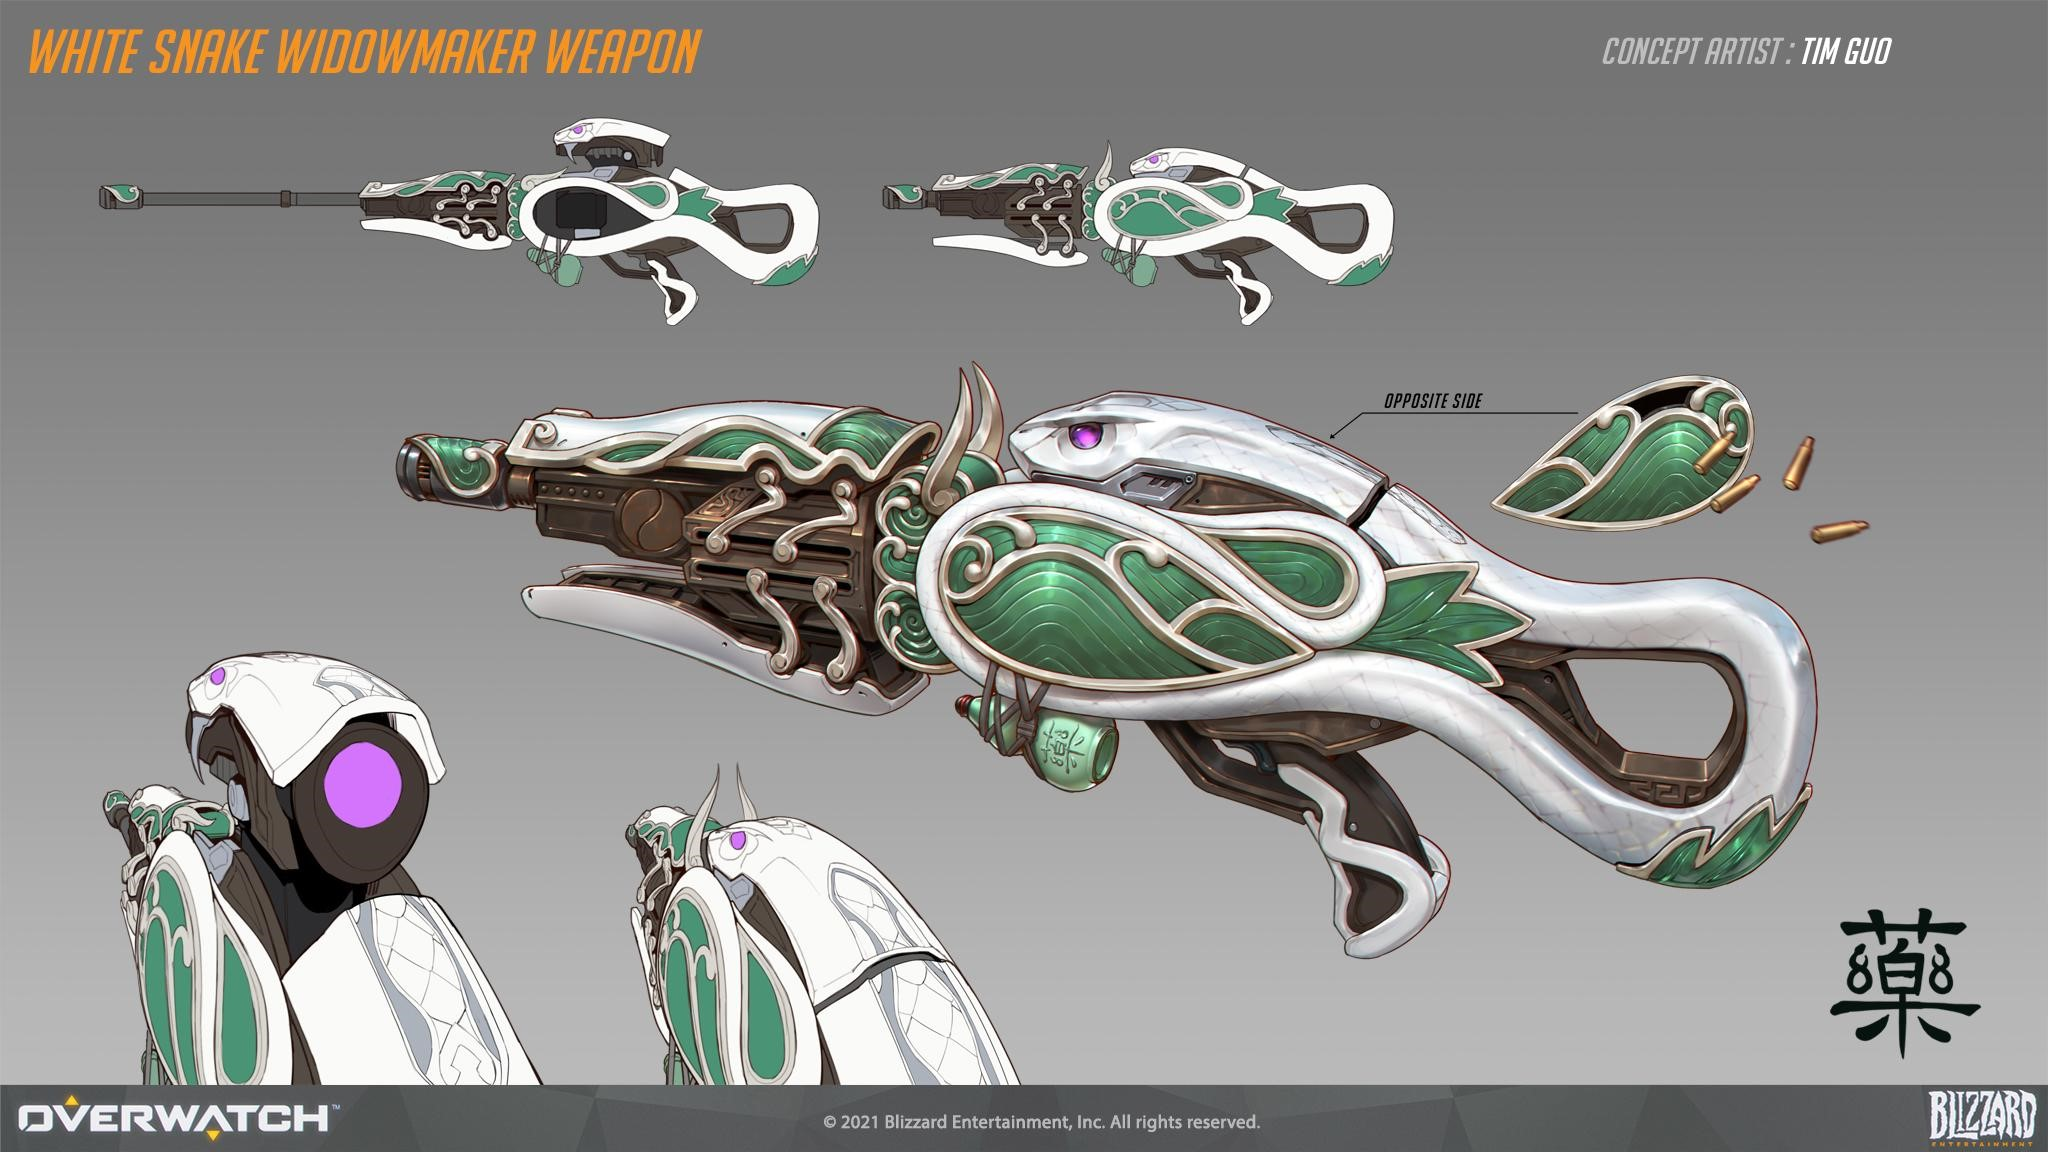 Pale Serpent Widowmaker Weapon Concept Art